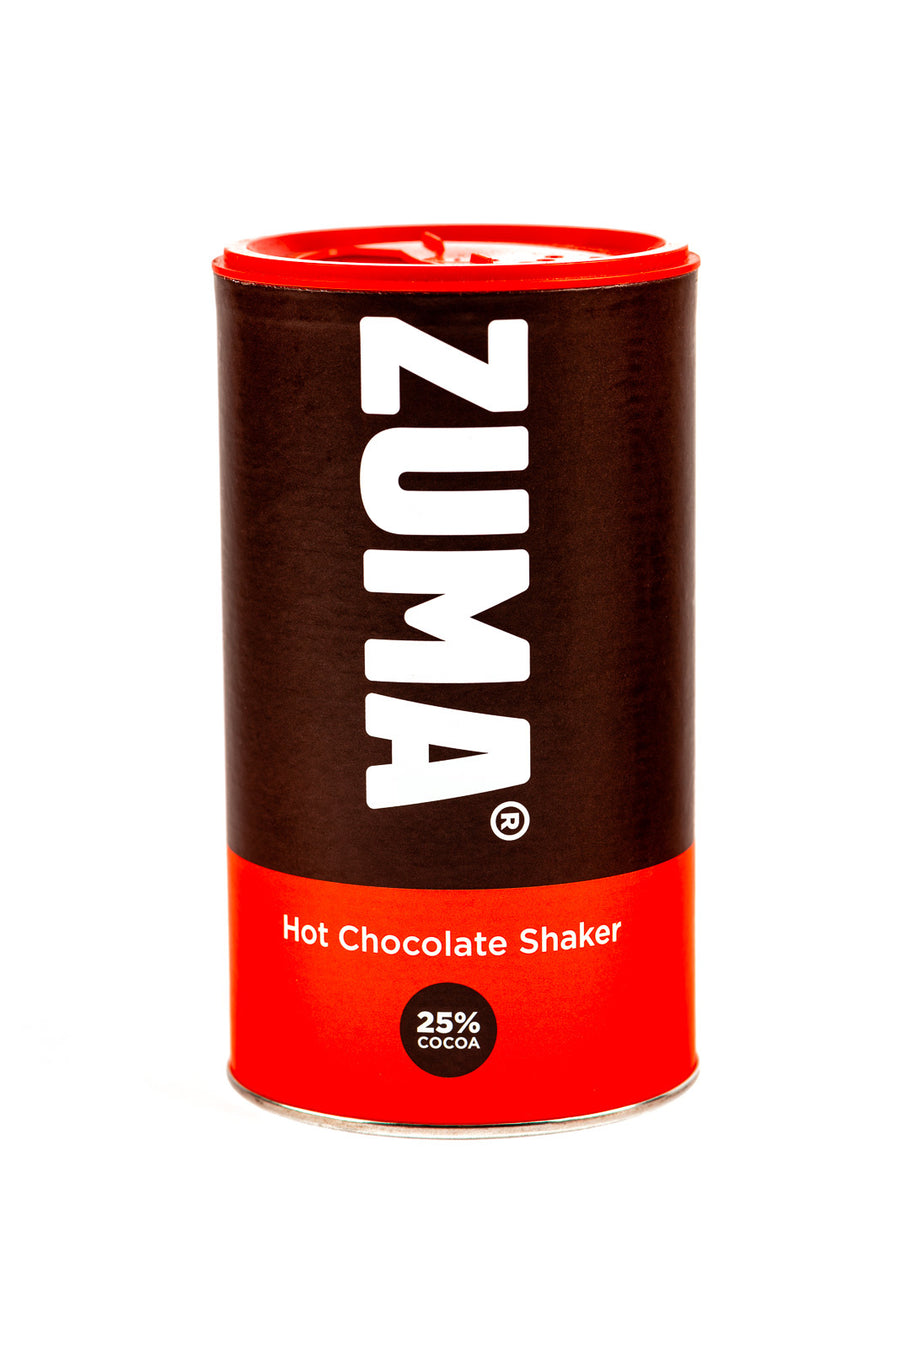 Zuma Hot Chocolate Shaker 300g